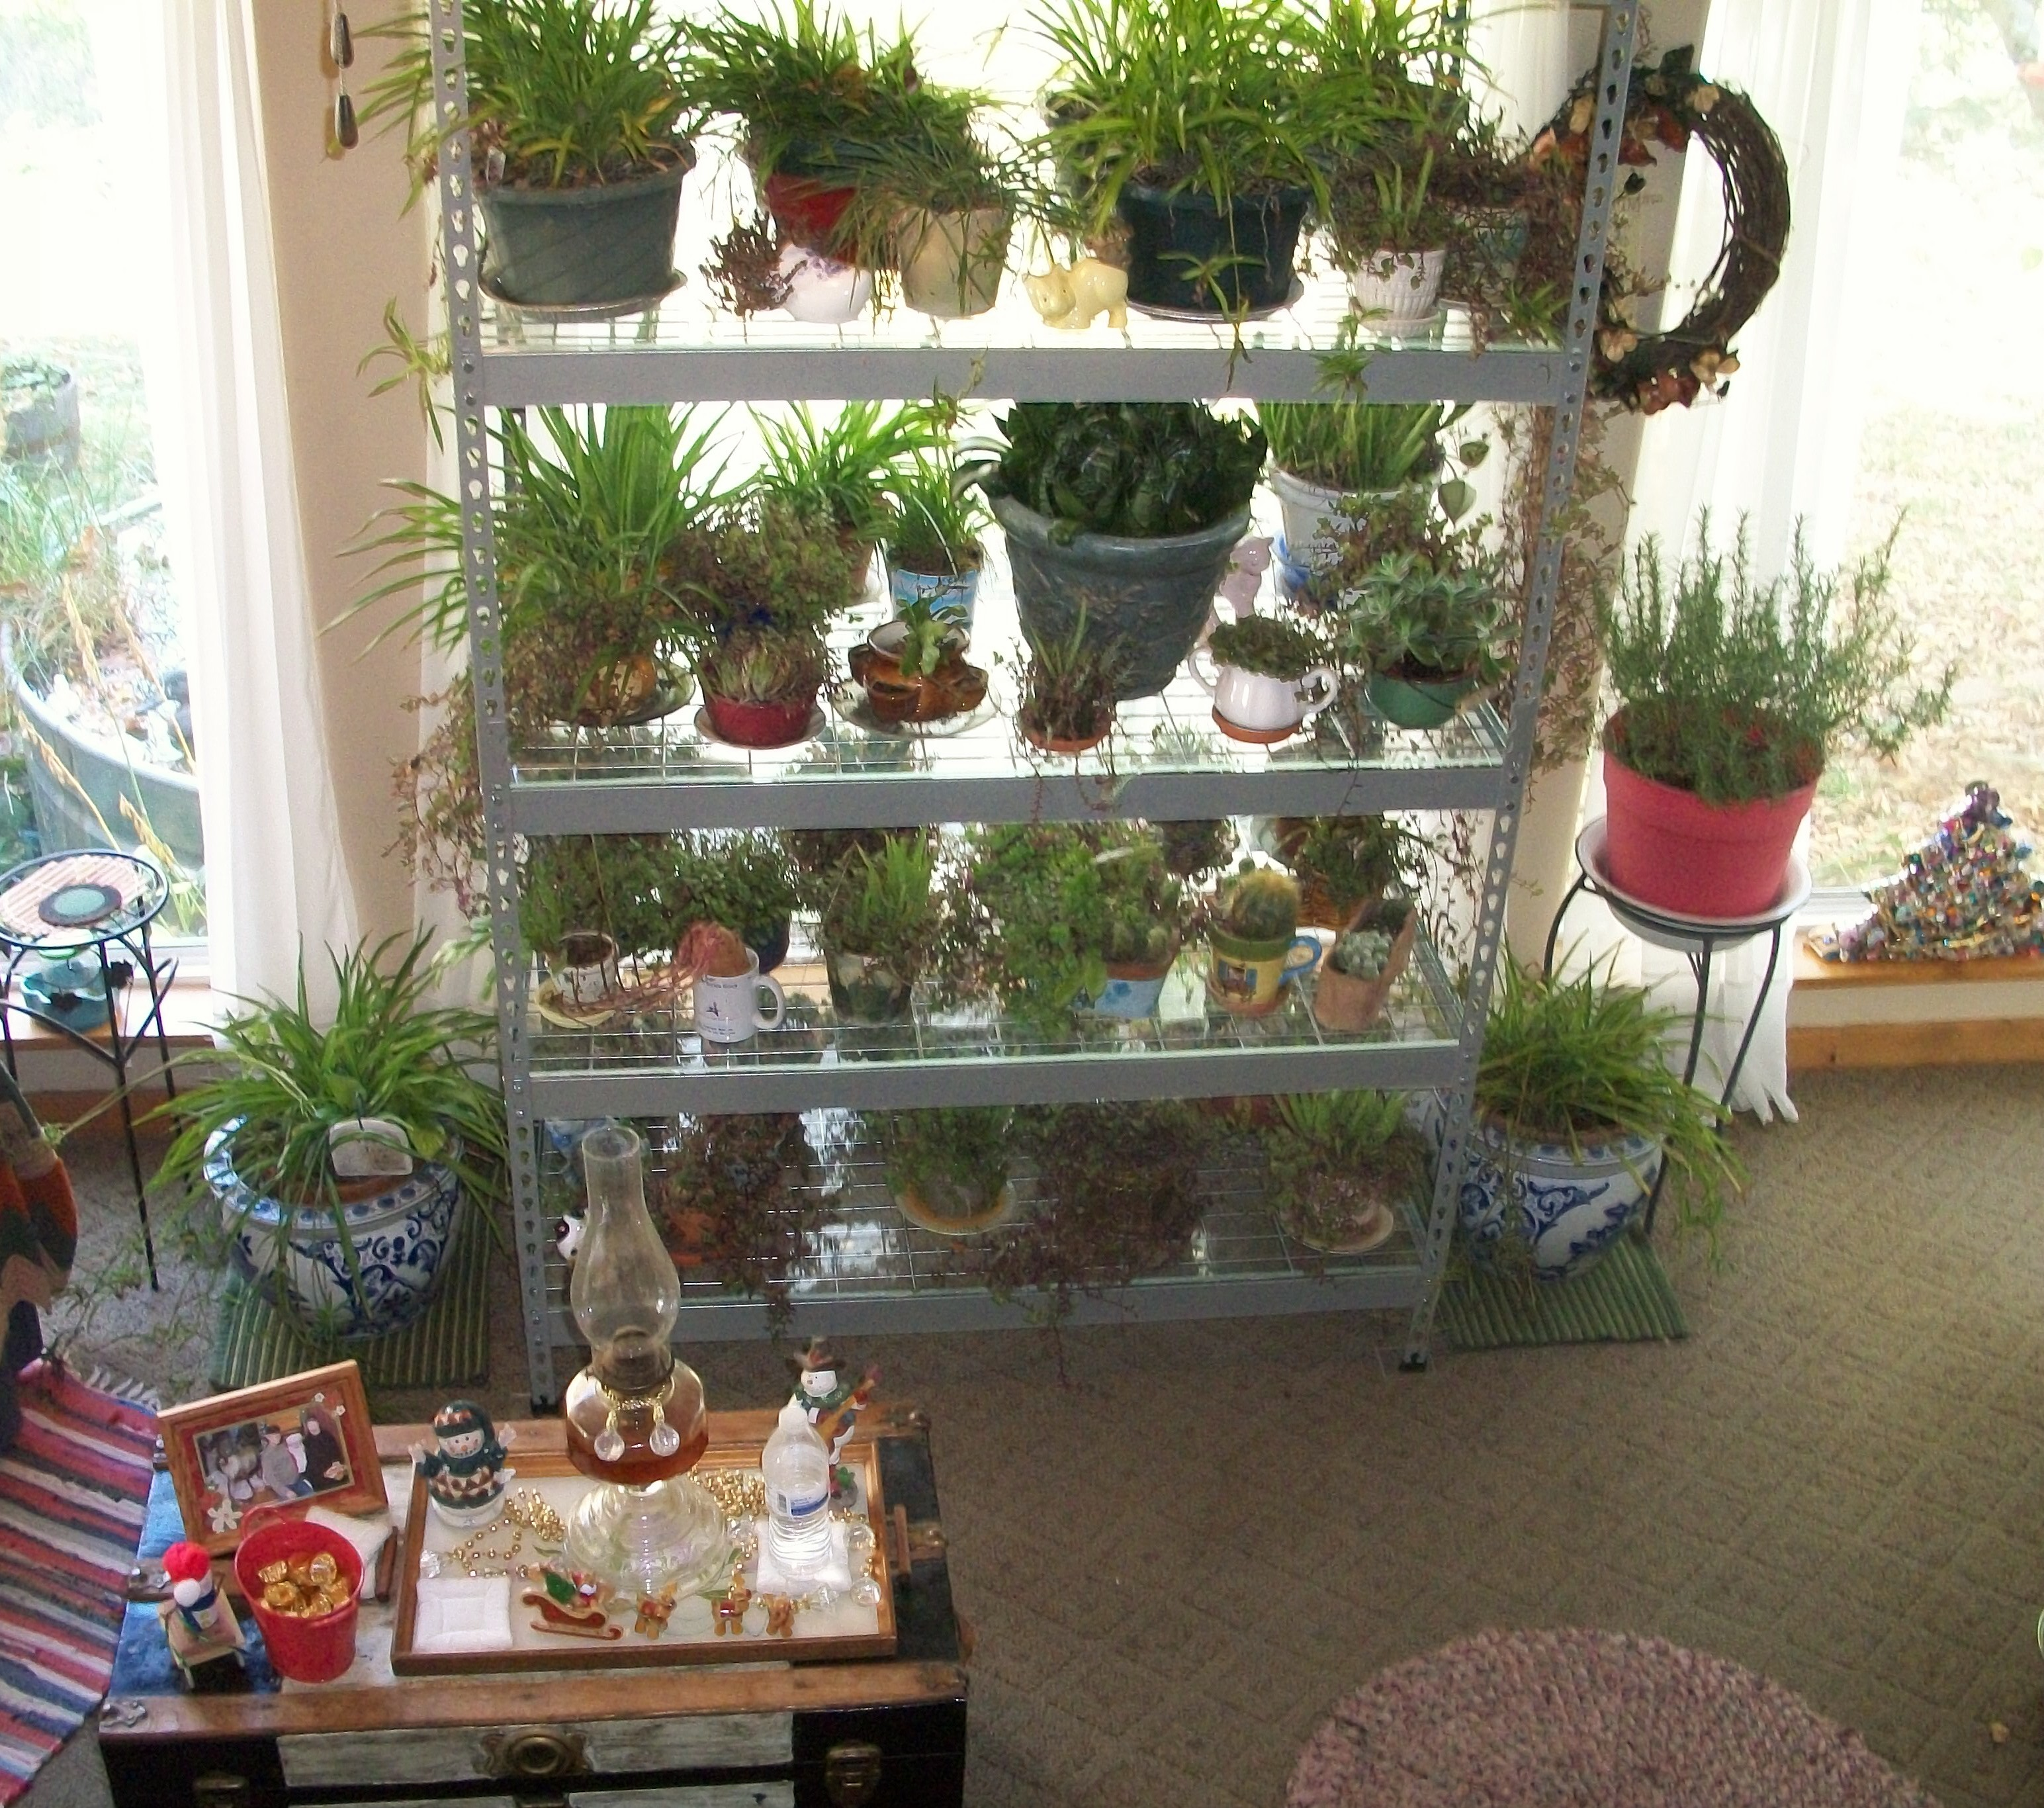 Plants Inside Rooms: OCT. 31, '14 HOUSE PLANTS ARE BACK INSIDE–SUPPOSE TO